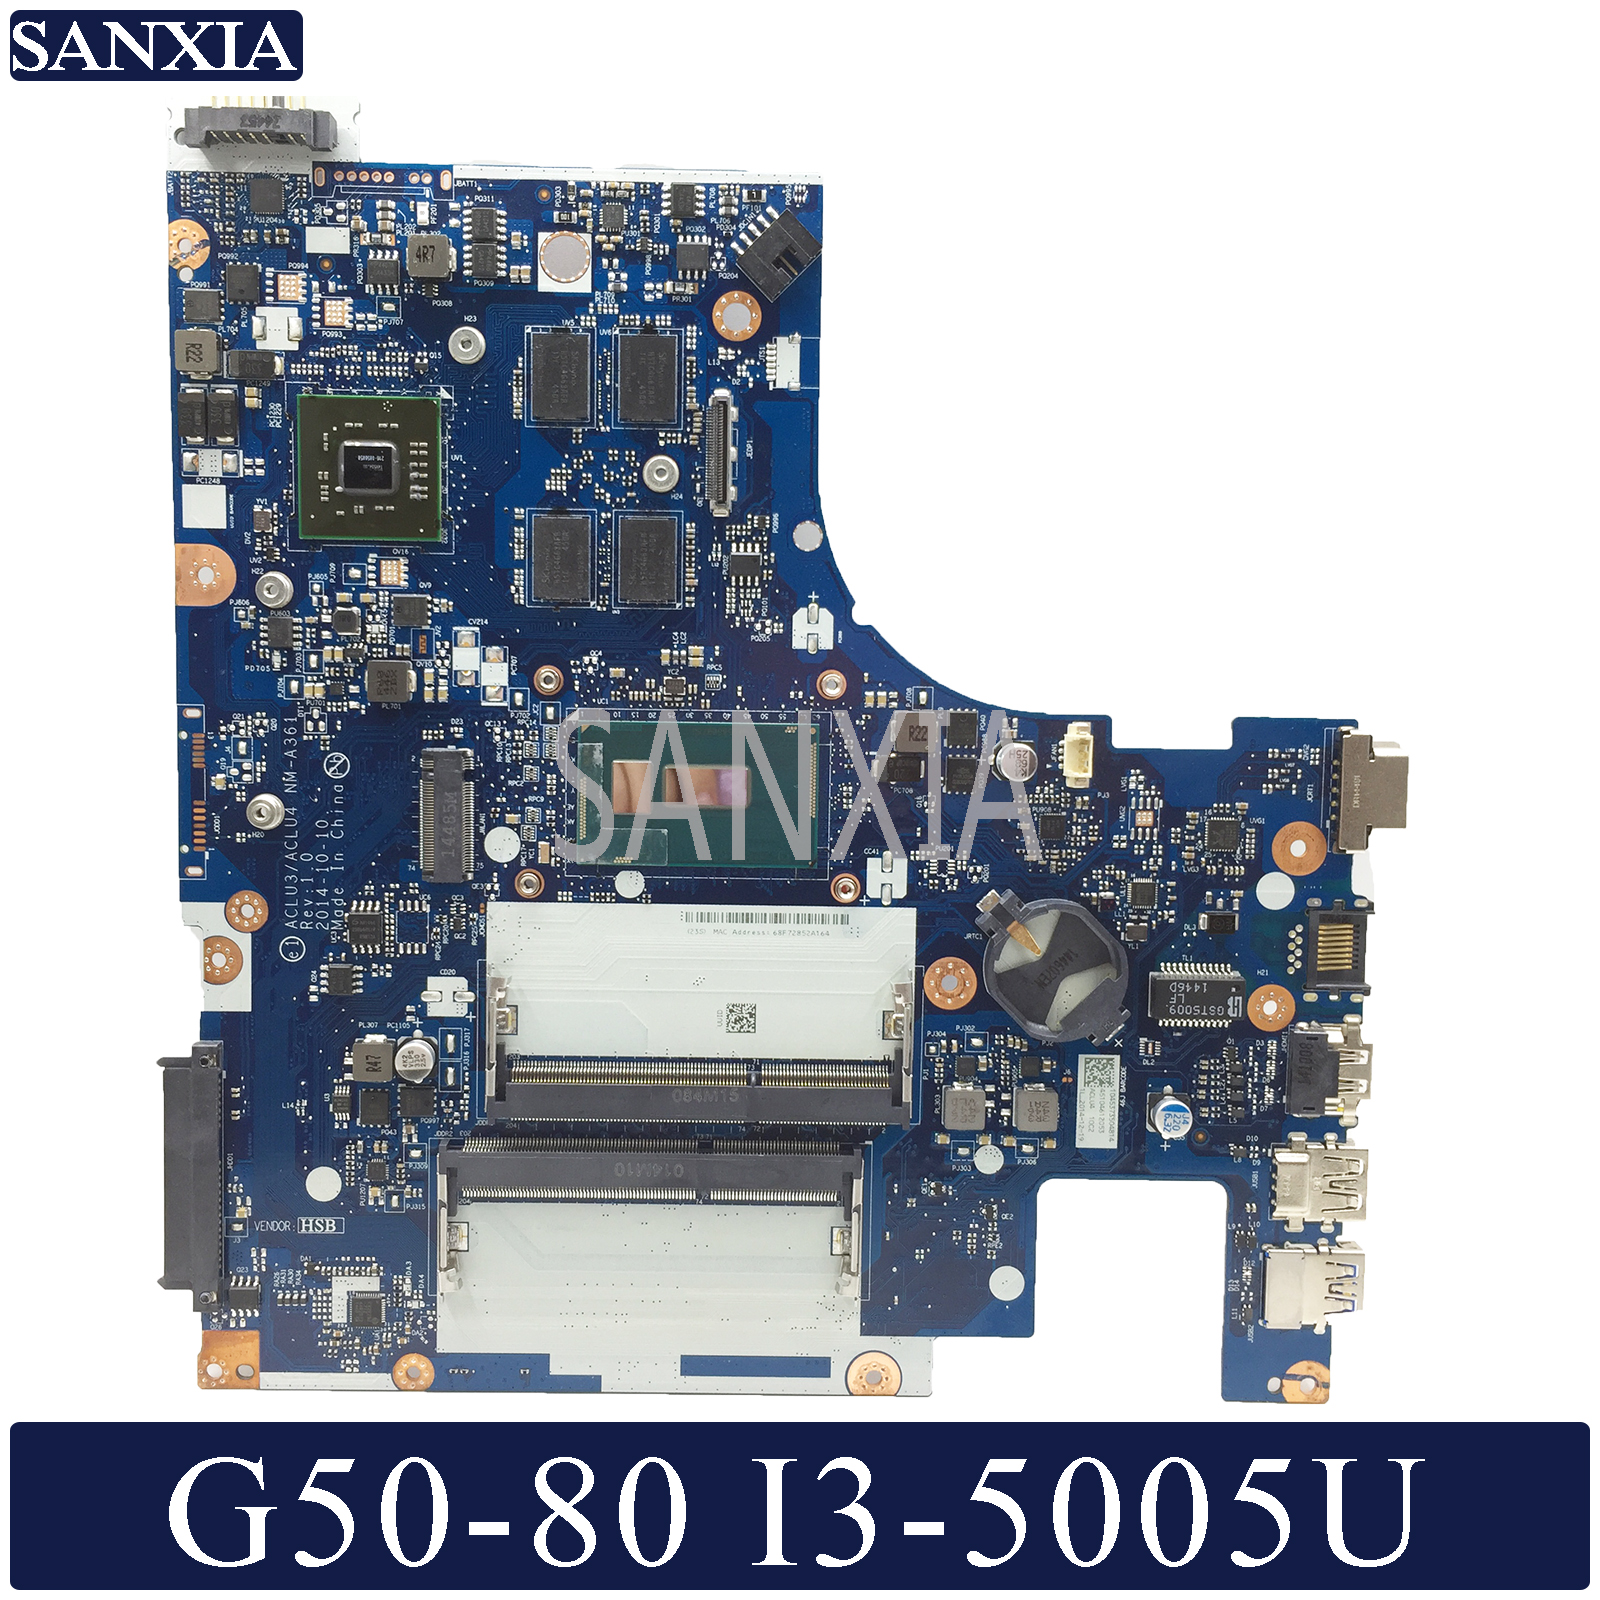 KEFU <font><b>NM</b></font>-<font><b>A361</b></font> Laptop Motherboard for Lenovo G50-80 original mainboard I3-5005U R5-Video image